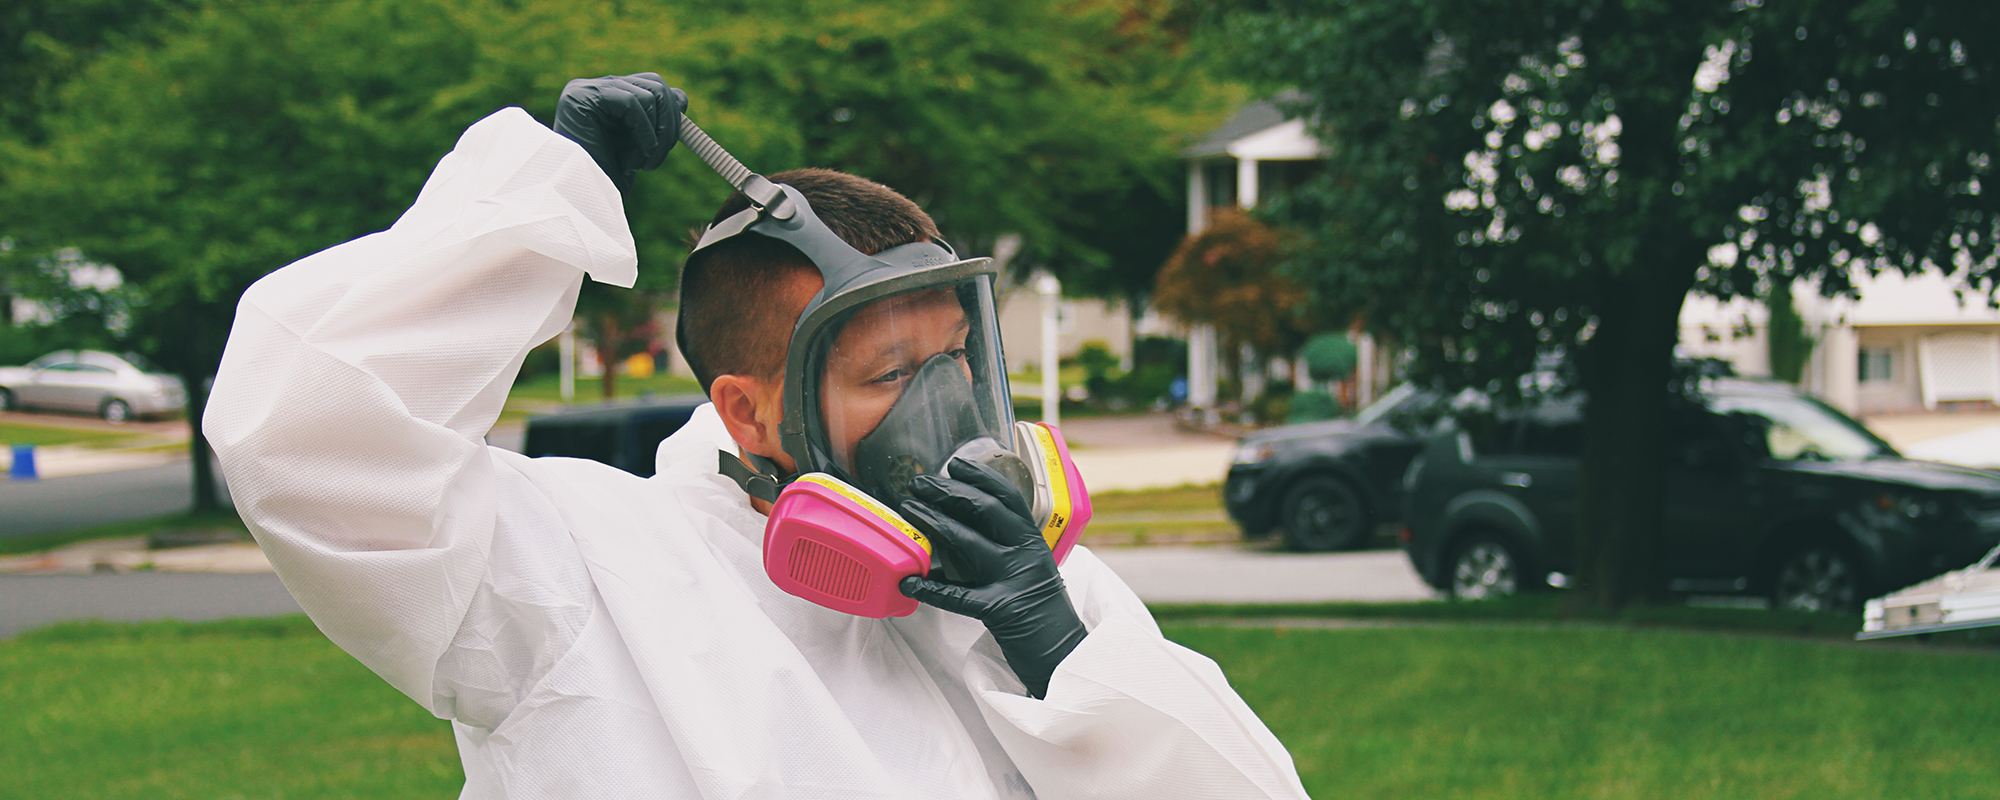 trained technicians for mold removal Mount Holly NJ